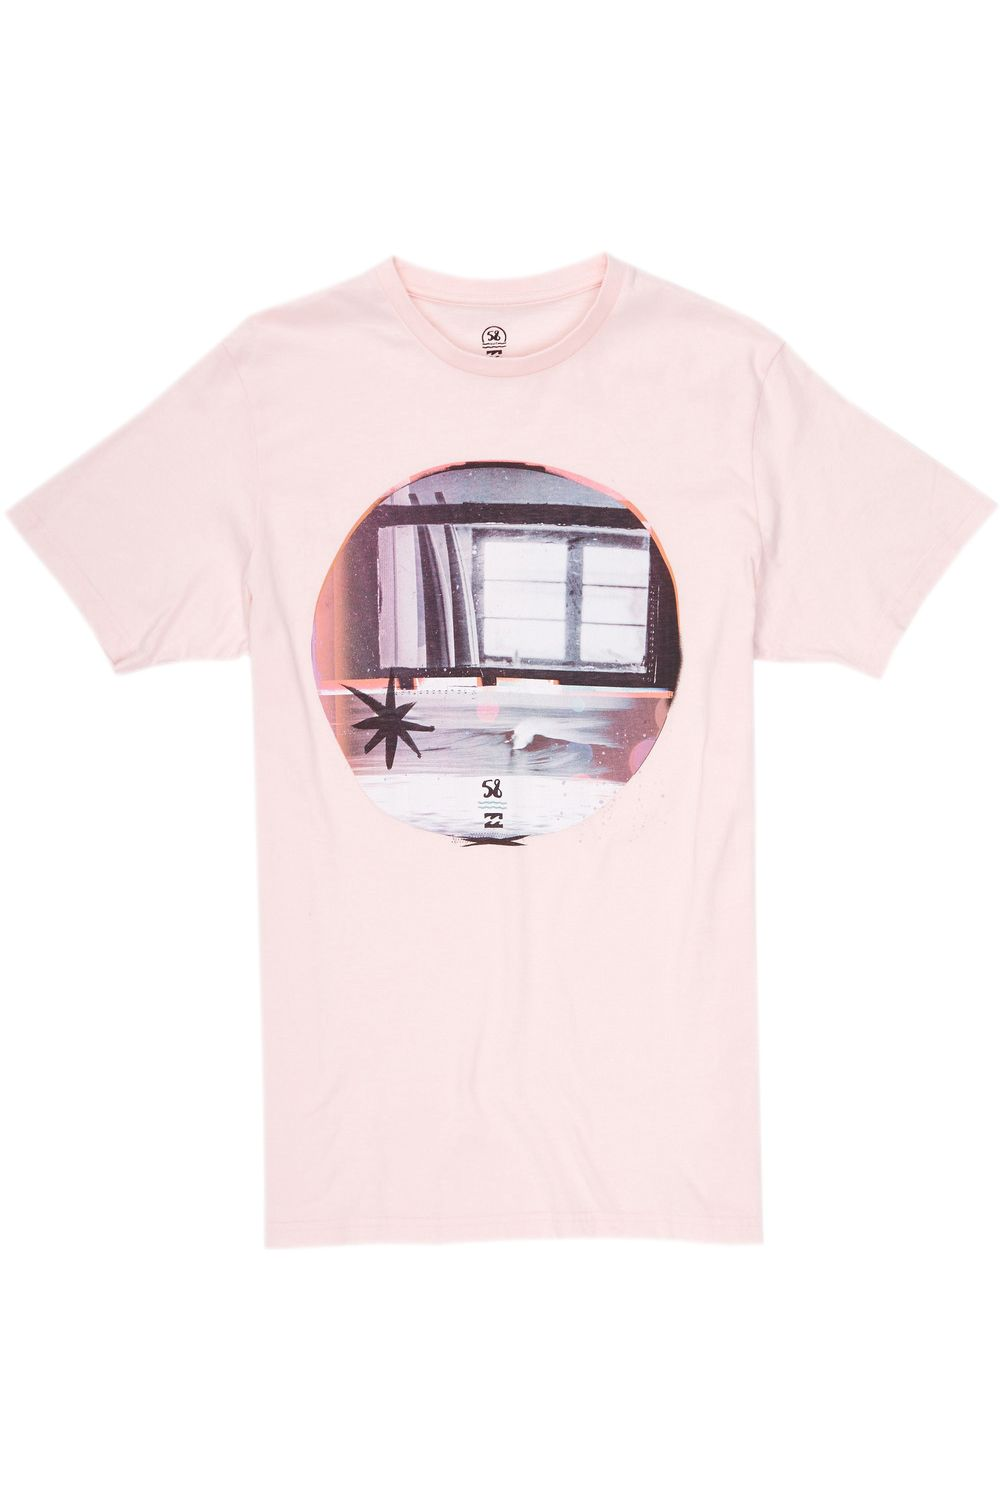 T-Shirt Billabong x 58 Surf WINDOW Light Lavander